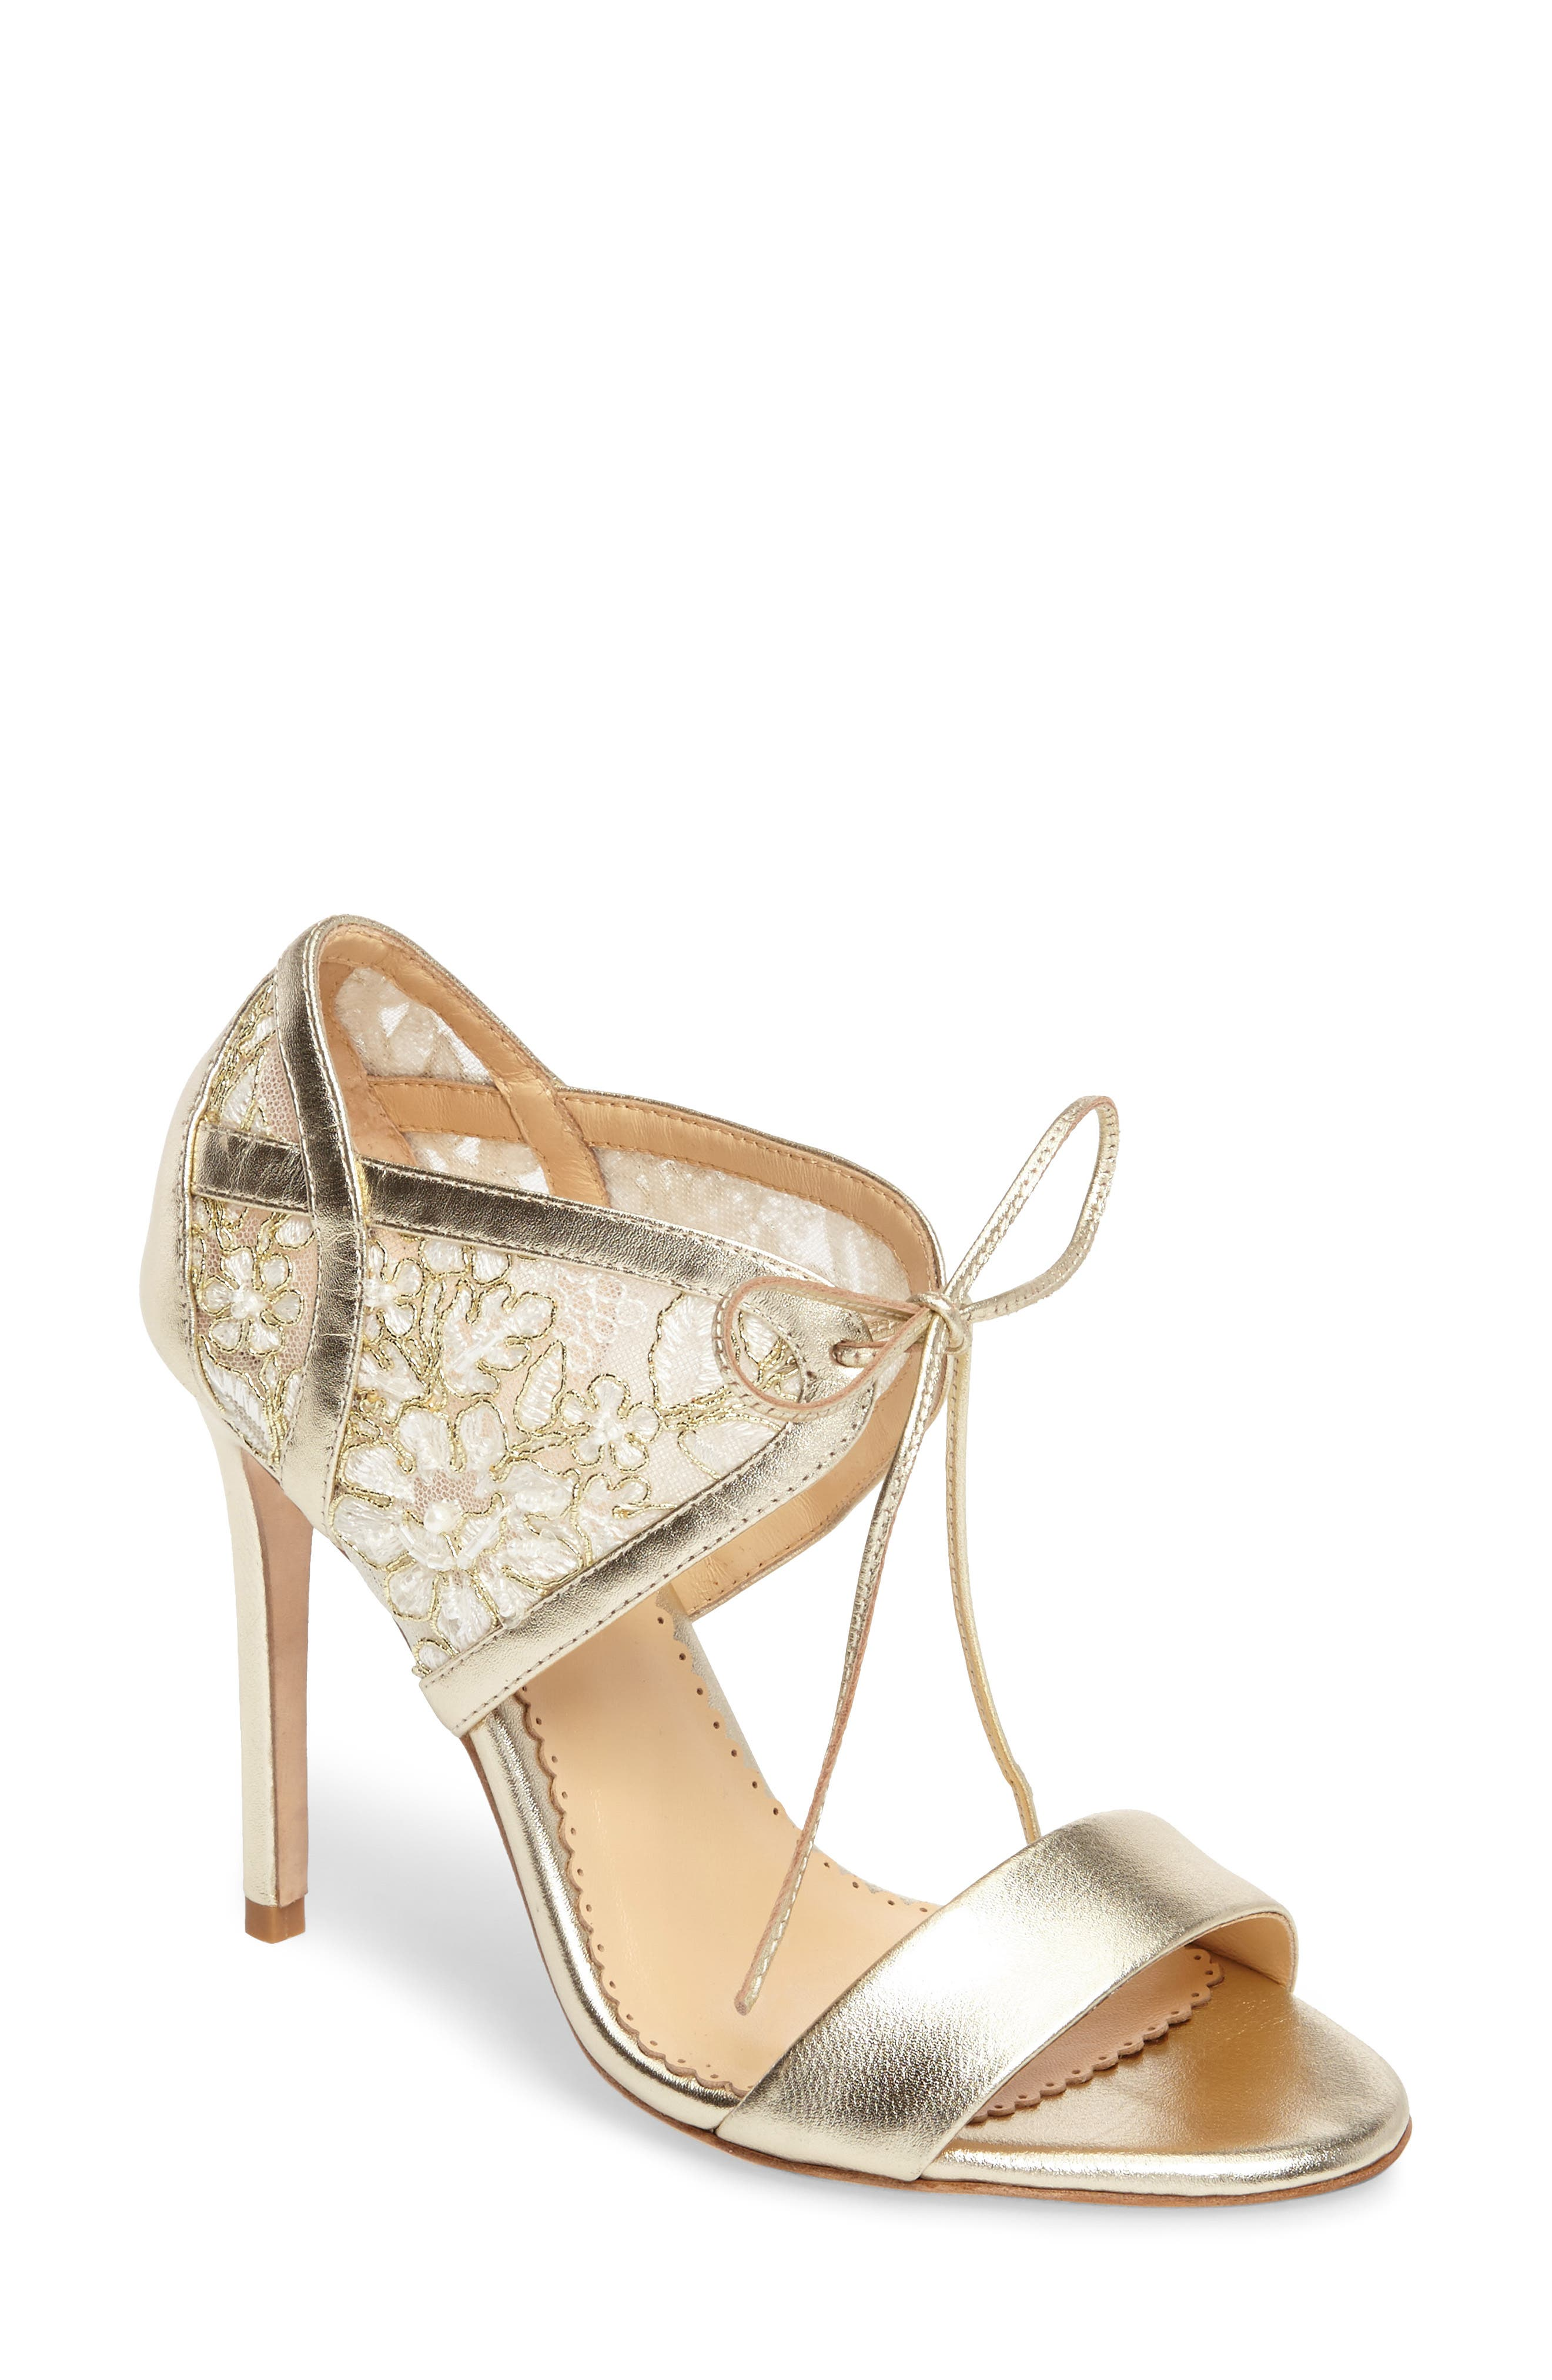 Grace Ankle Cuff Sandal,                             Main thumbnail 1, color,                             Gold Lace